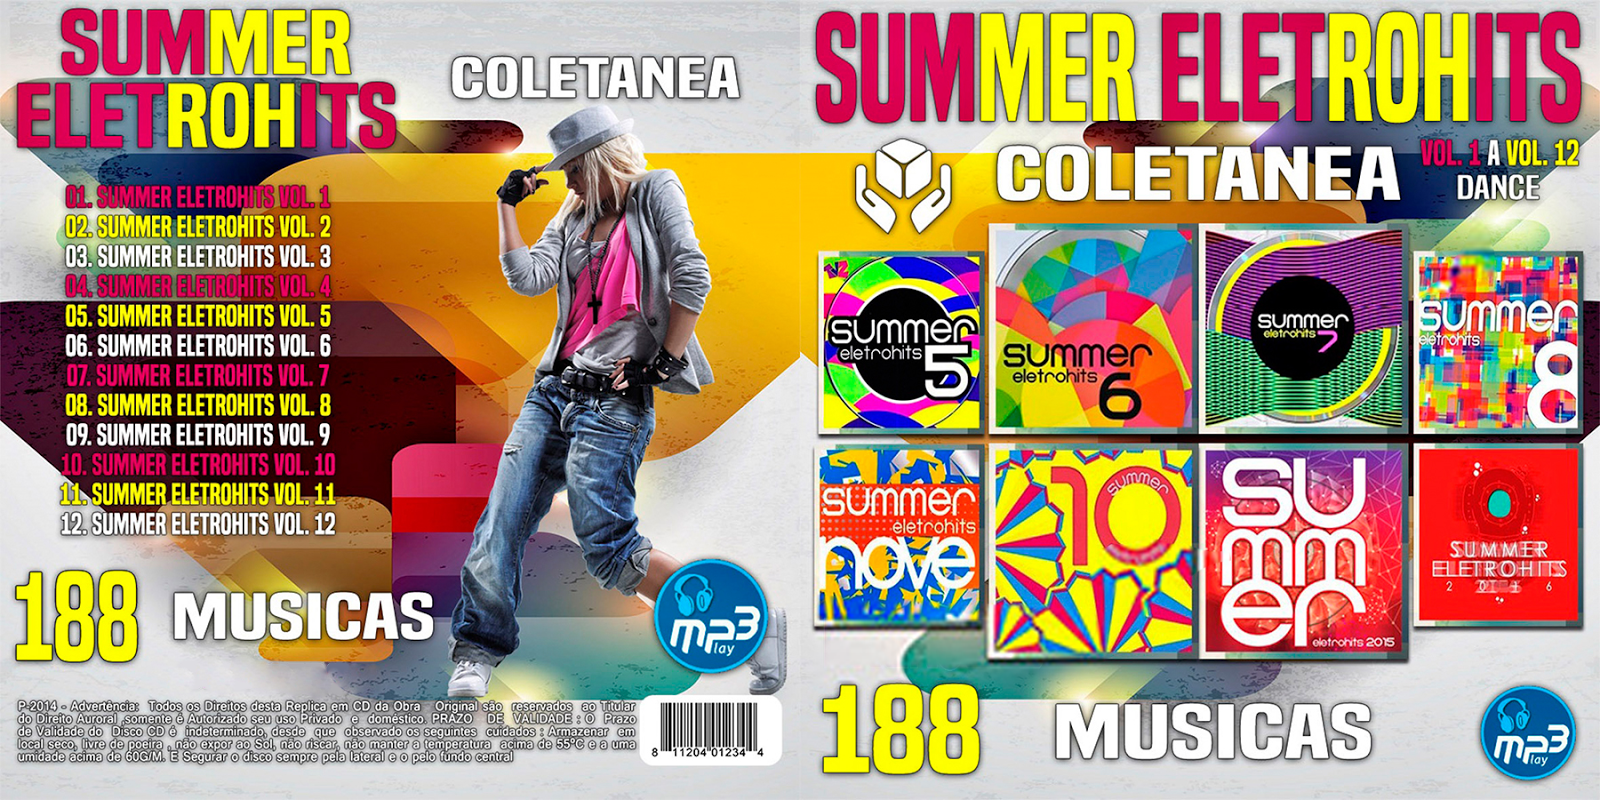 musicas do summer eletrohits 6 gratis